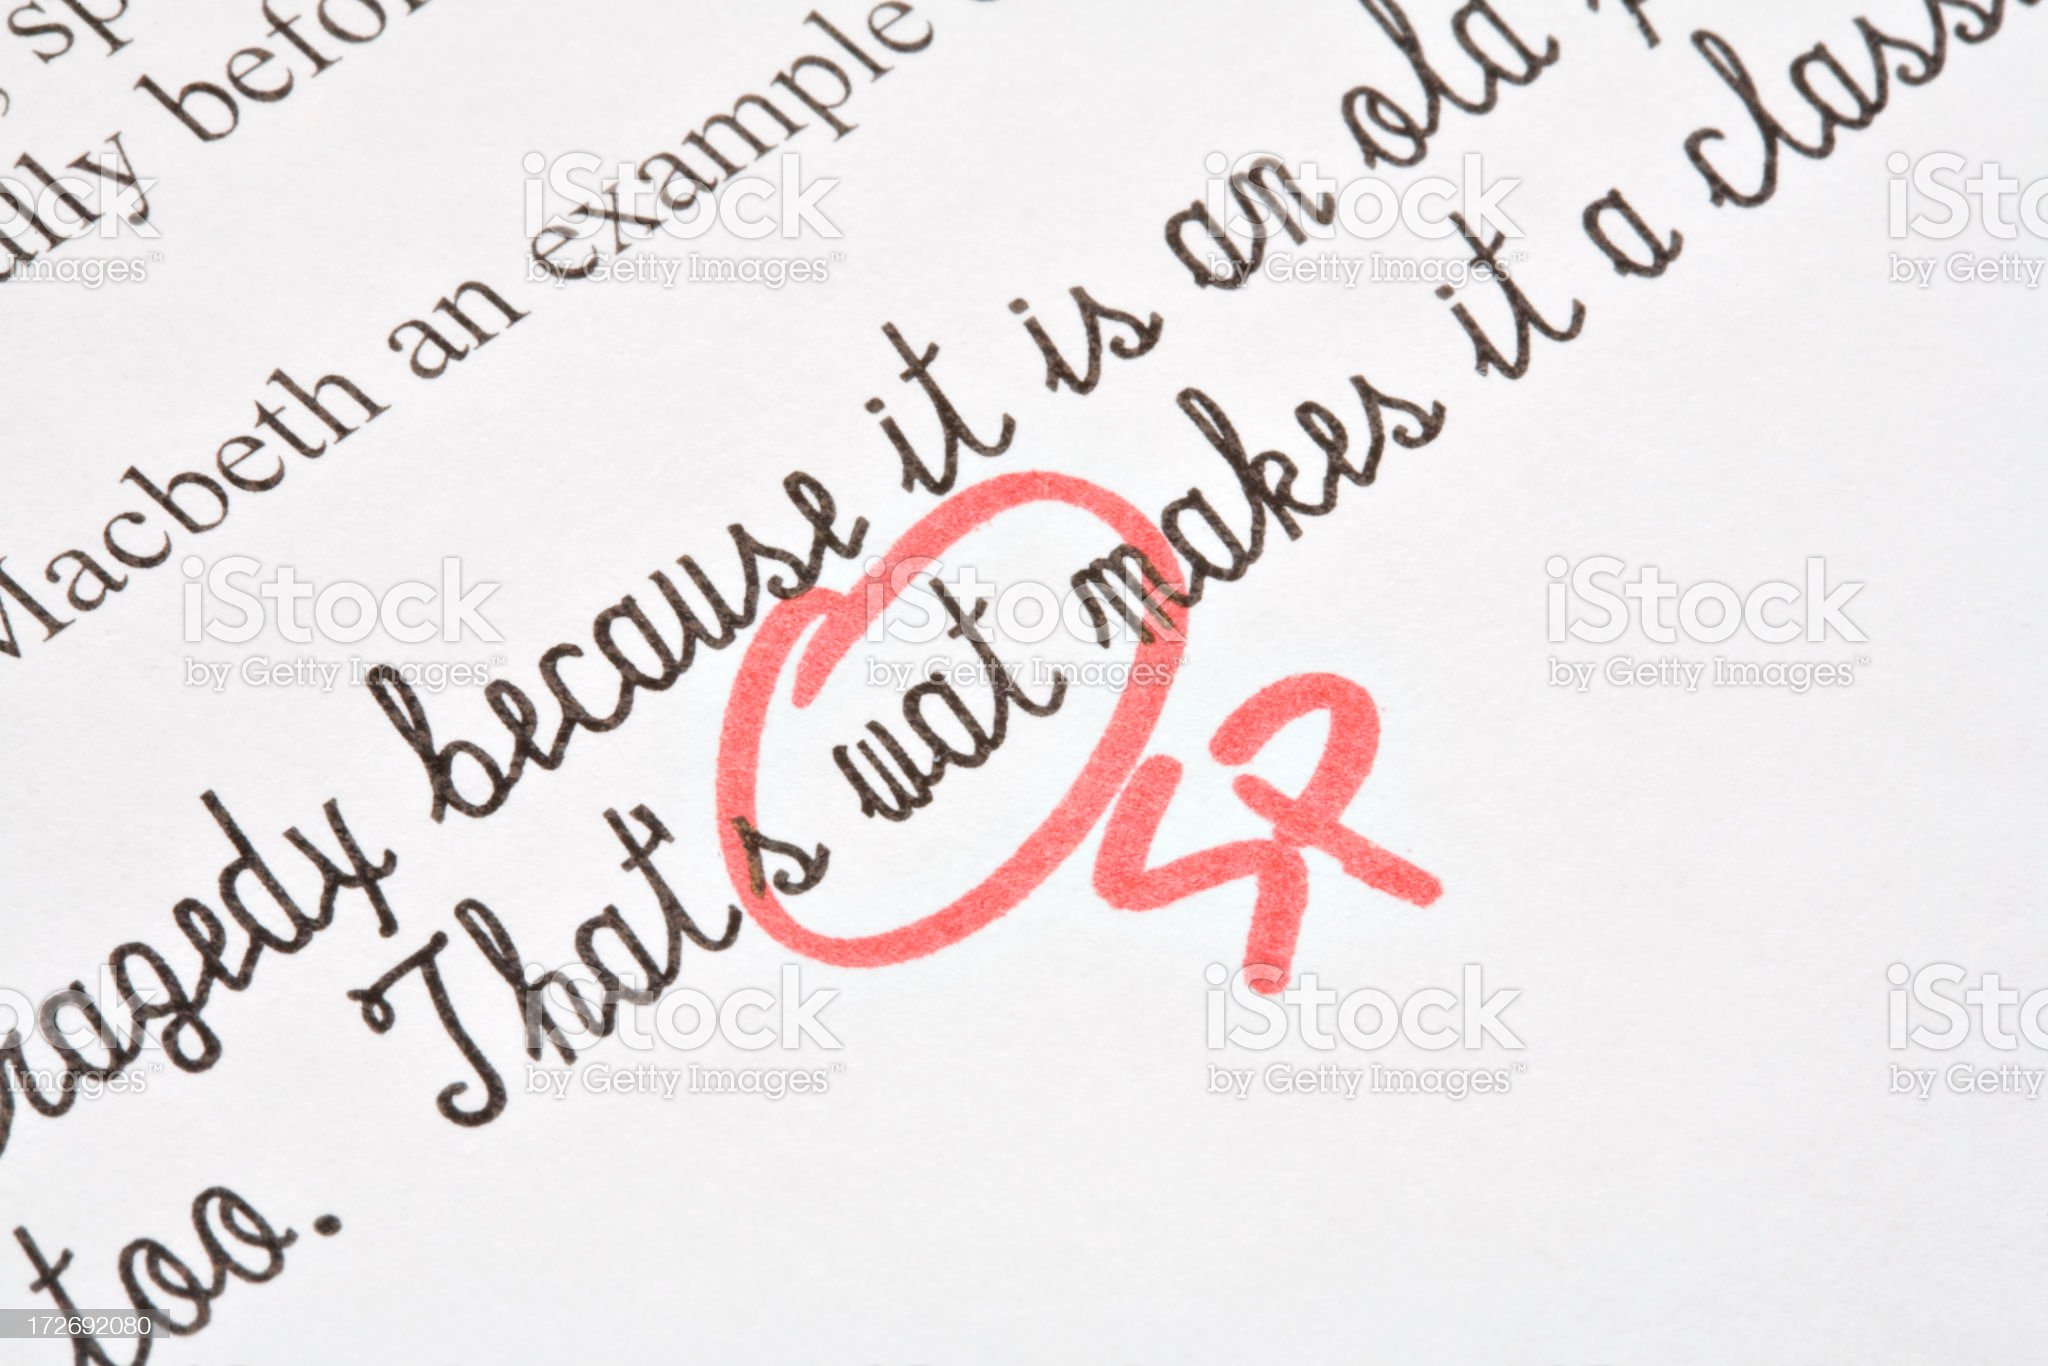 Spelling Correction on Exam royalty-free stock photo